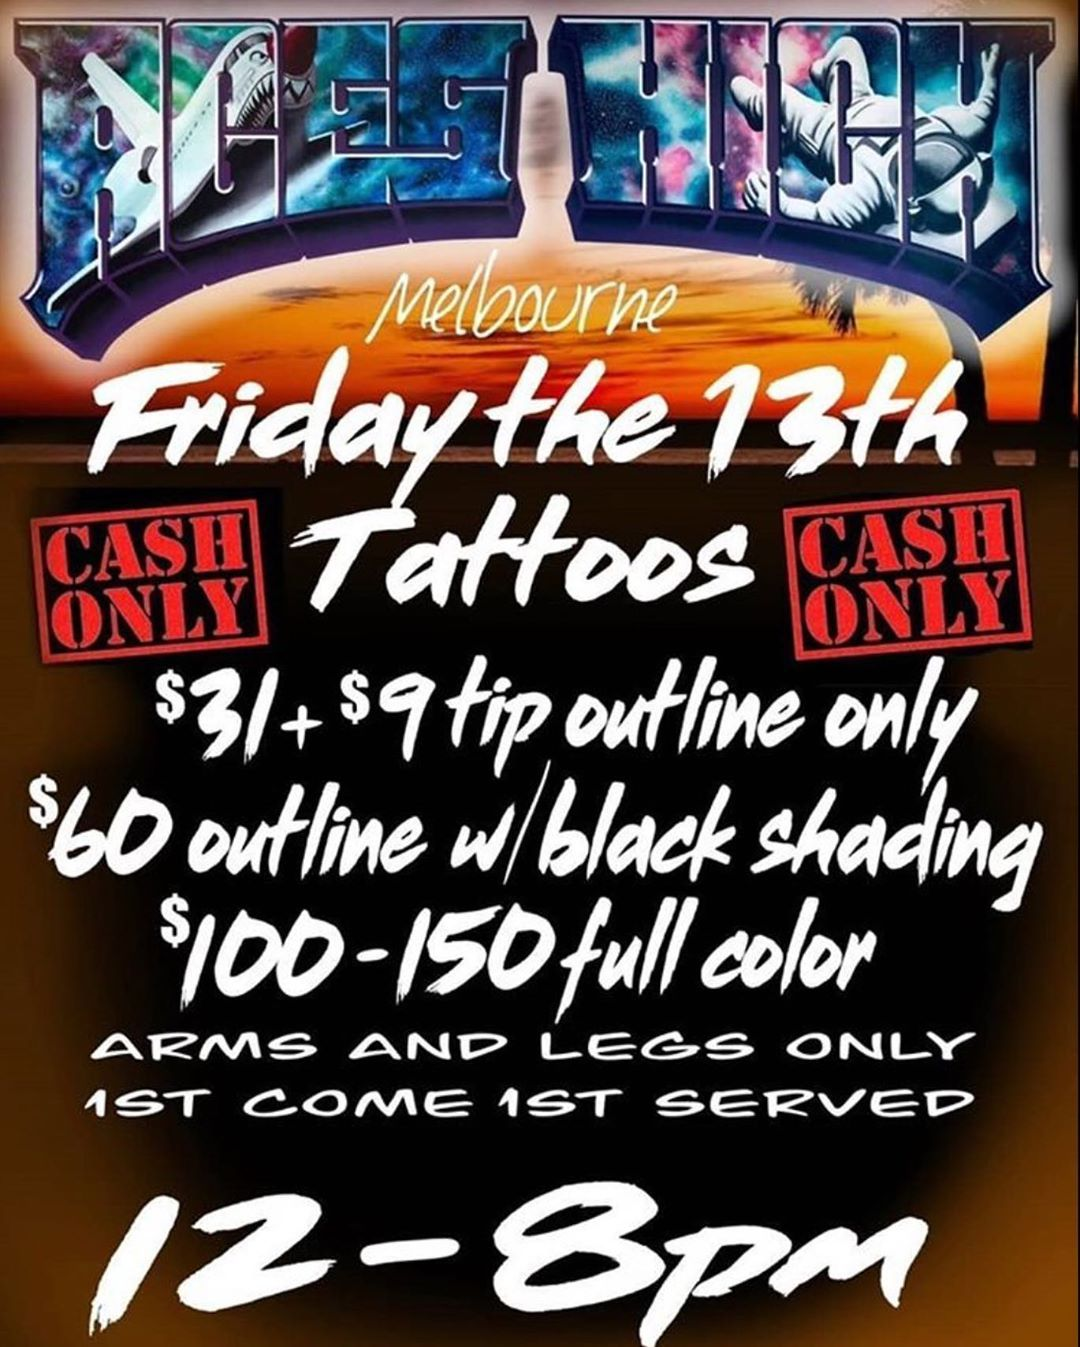 Friday The 13th Is Tomorrow Come Check Us Out We Re Open 12 7pm Today Visit Us At 4 In 2020 Friday The 13th Tattoo Lower Back Tattoos Harbor City